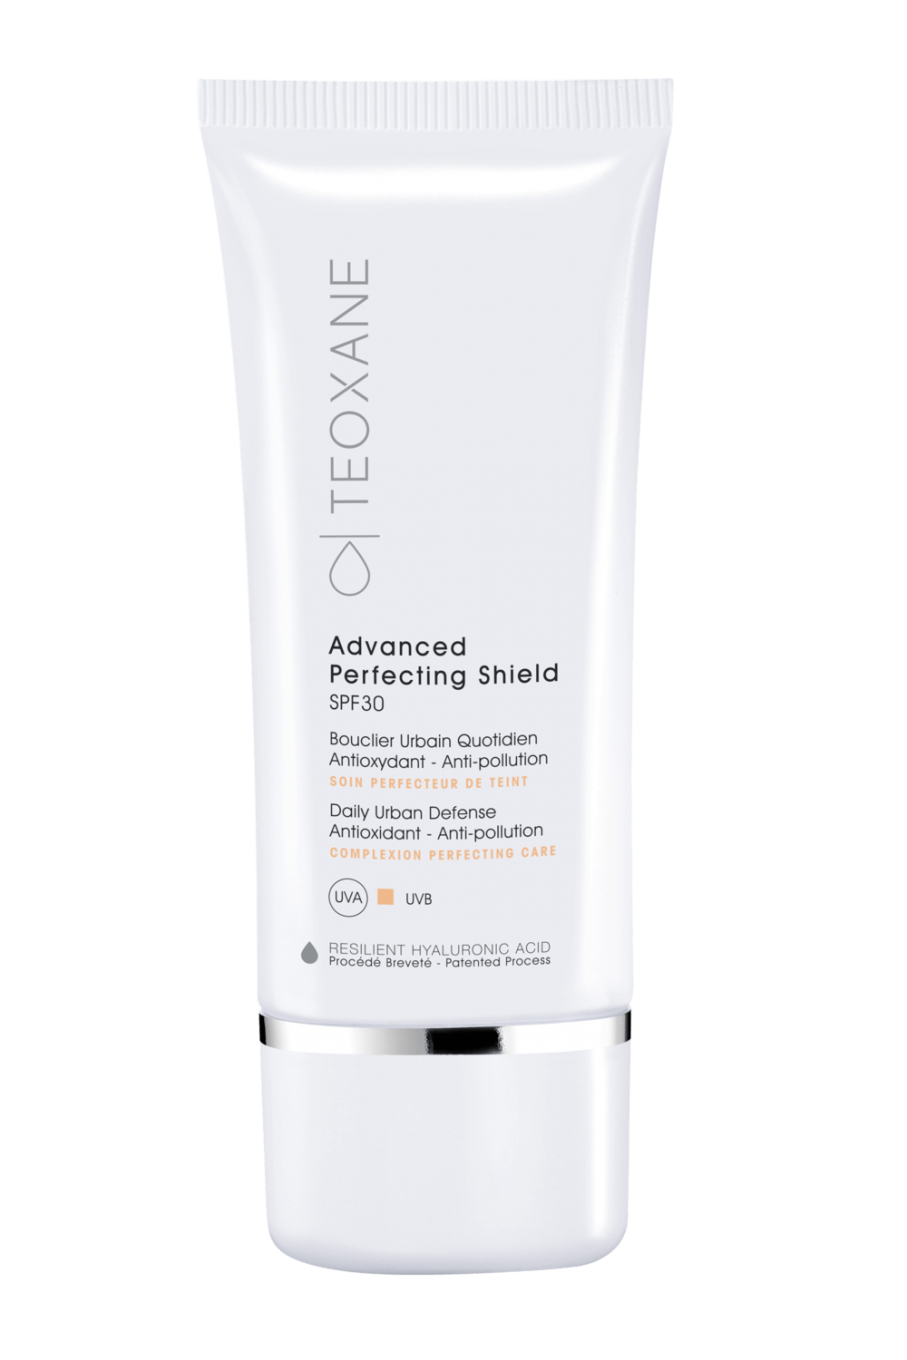 ADVANCED PERFECTING SHIELD SPF30 345 zł | 50 ml